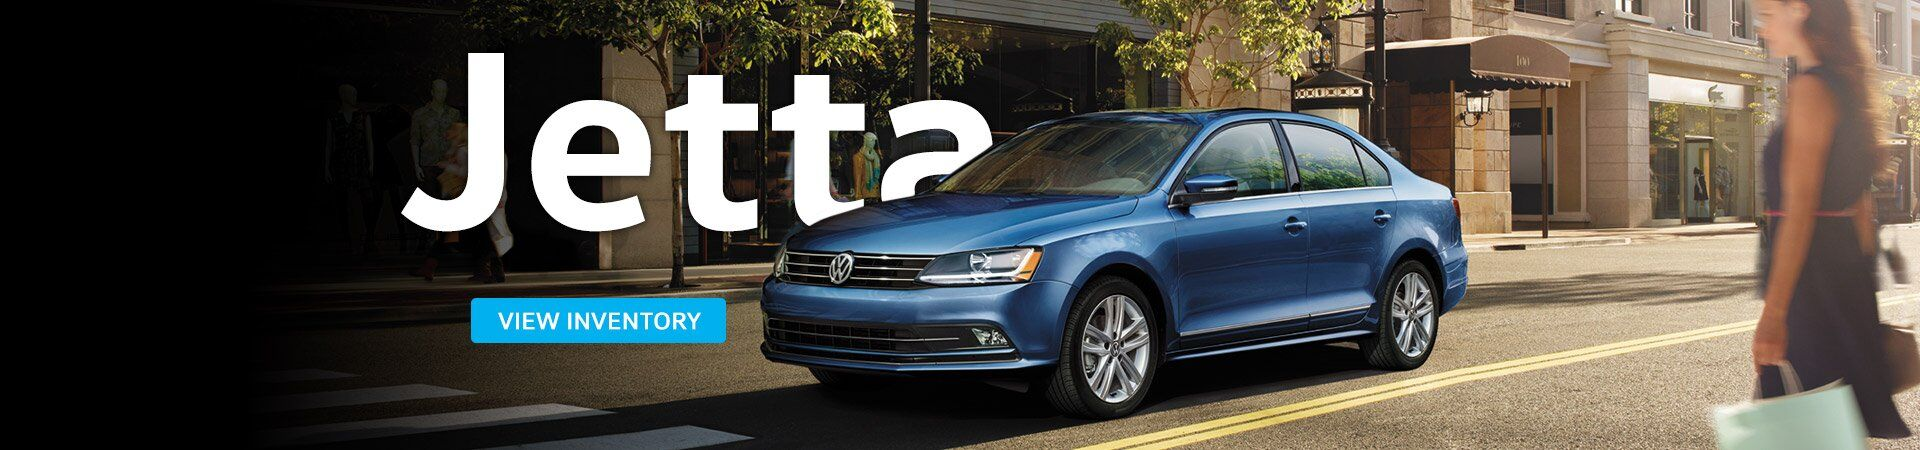 New VW Jetta near Ventura